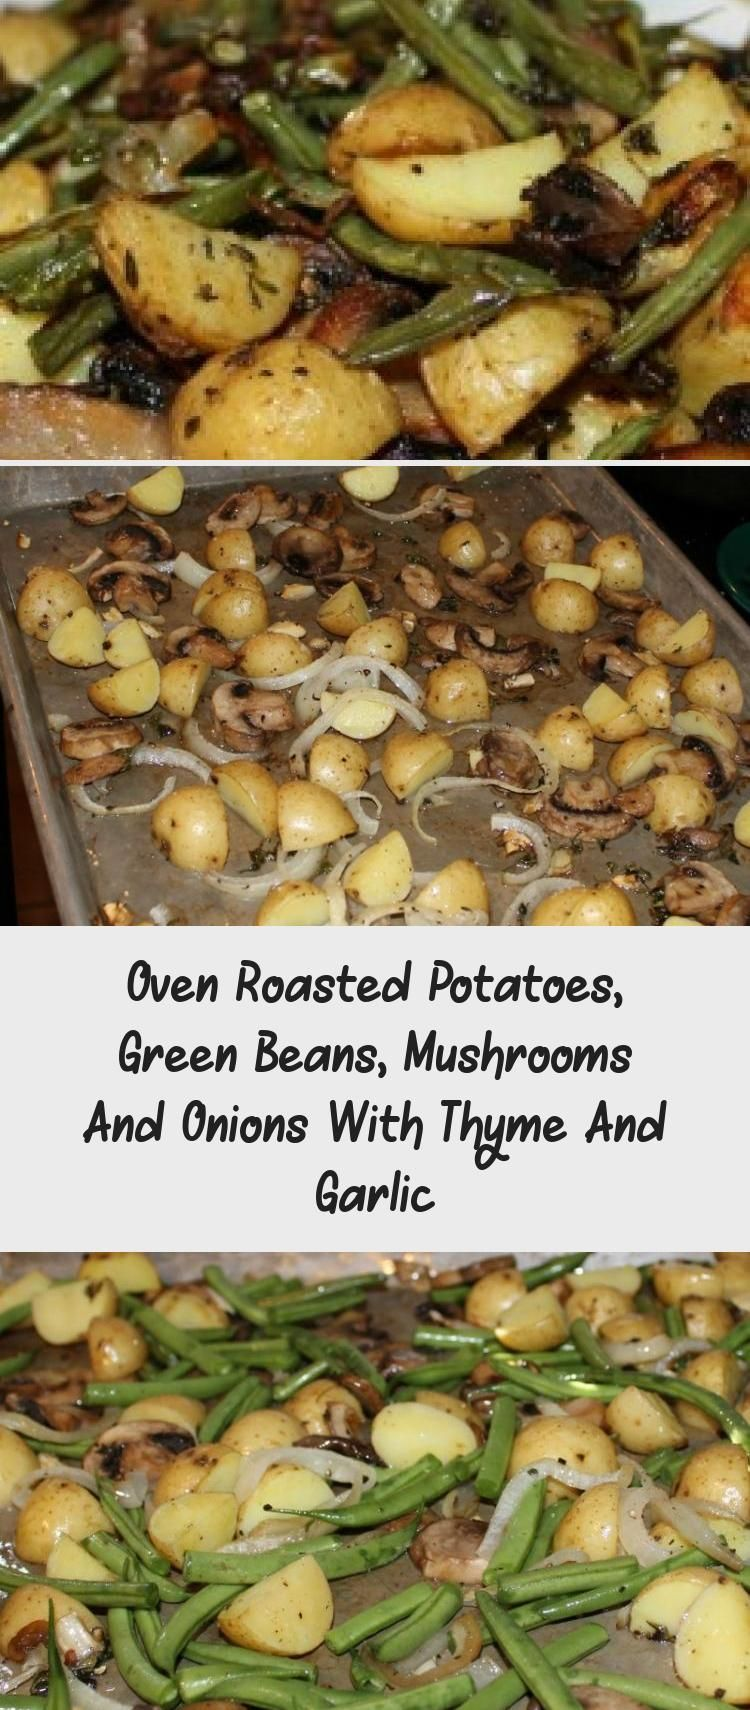 Oven Roasted Potatoes, Green Beans, Mushrooms And Onions With Thyme And Garlic - Best Recipes